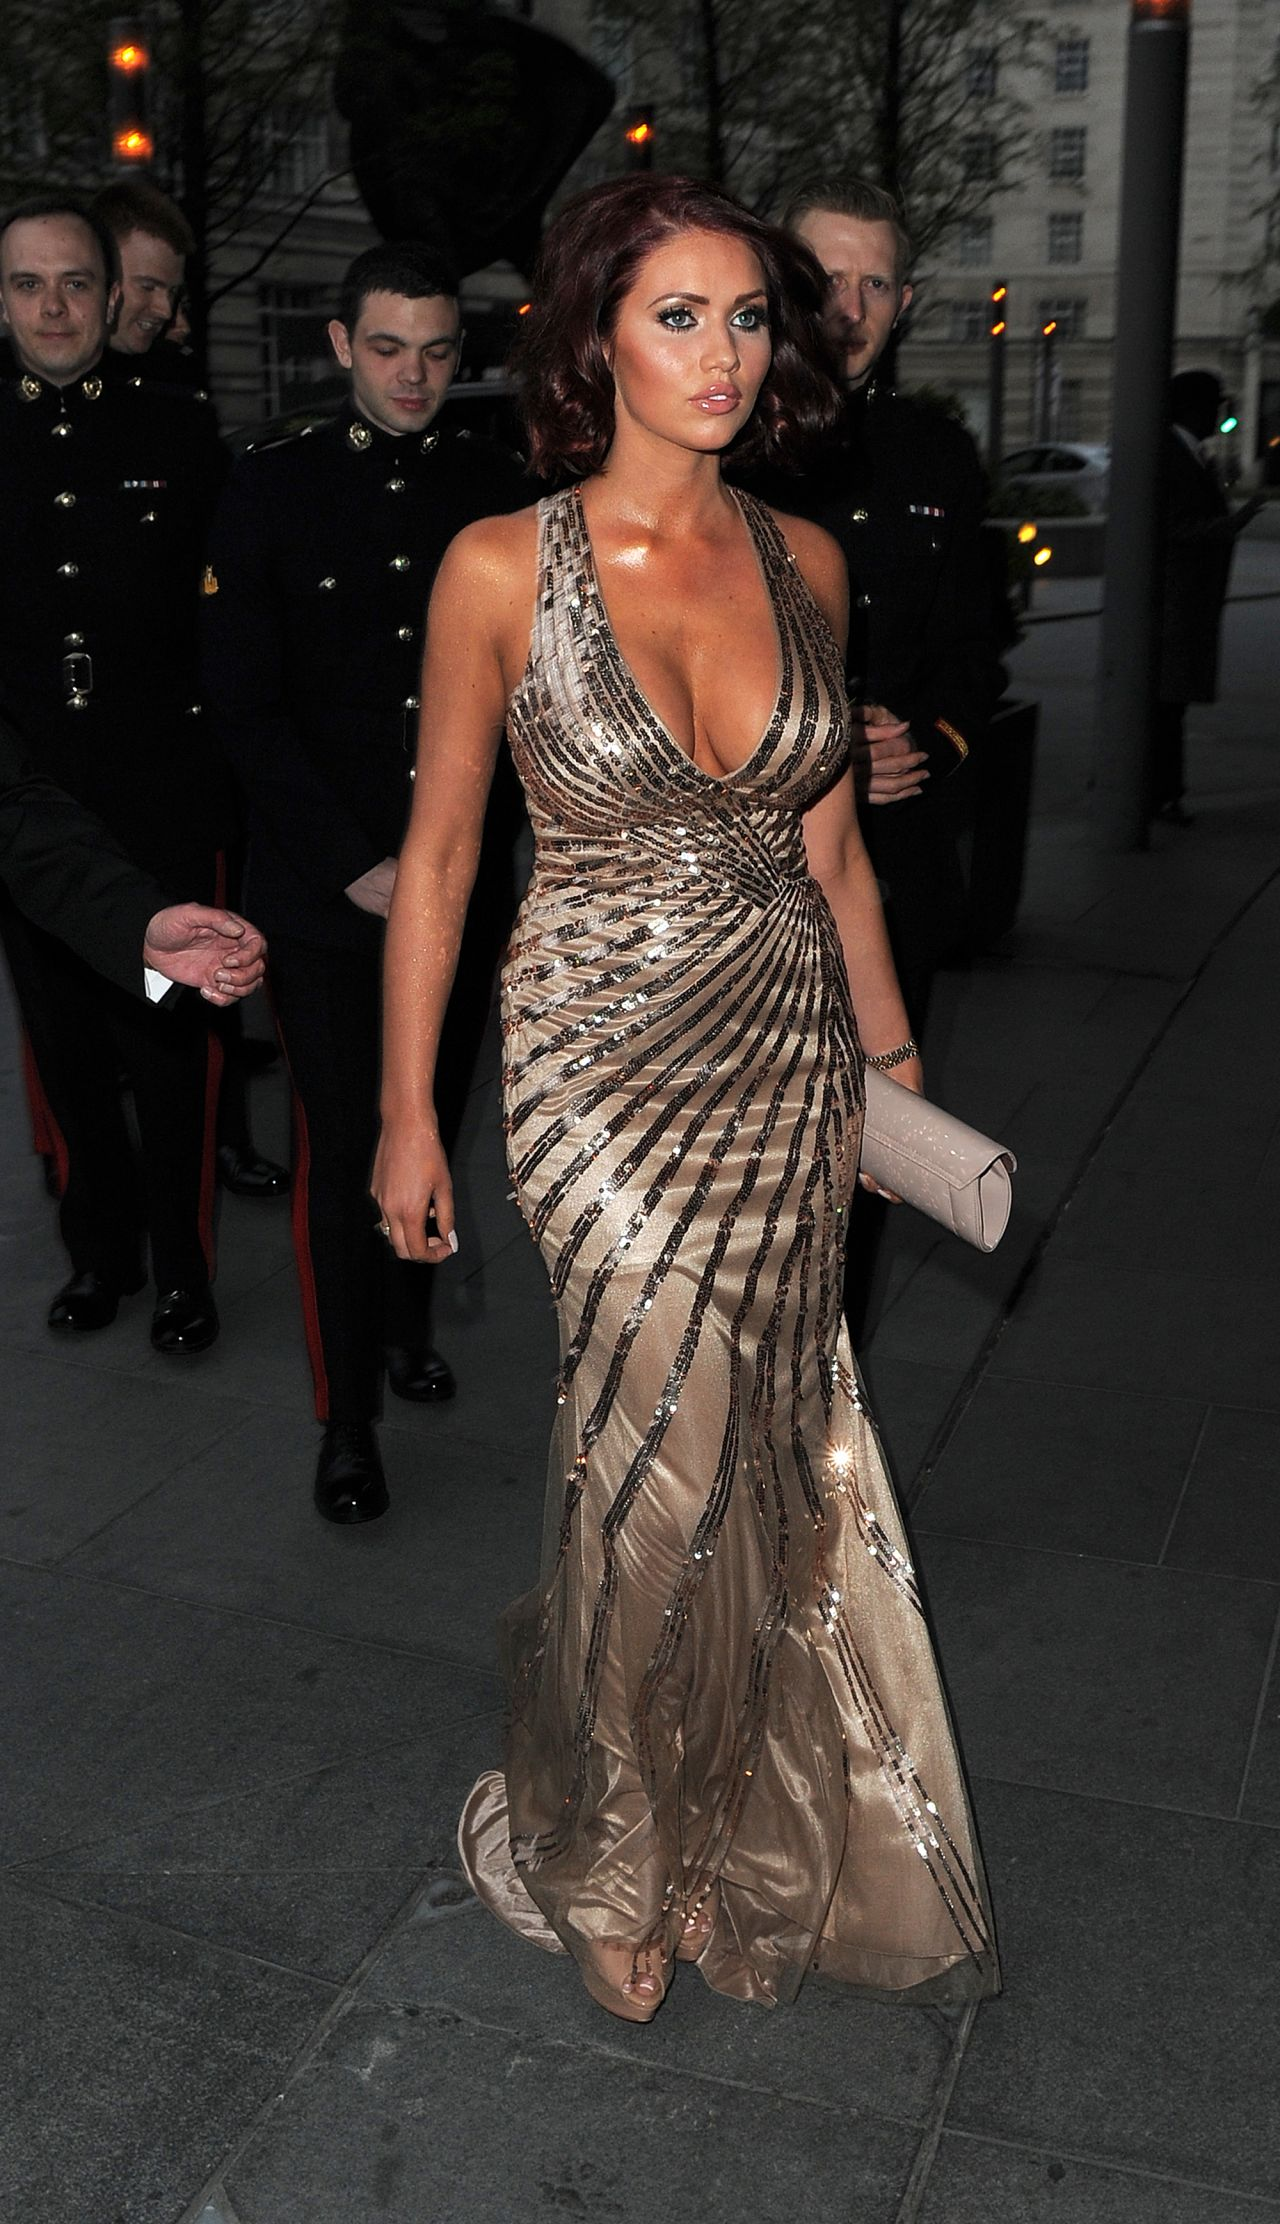 Amy Childs in Hot Dress - Soldiering On Awards in London